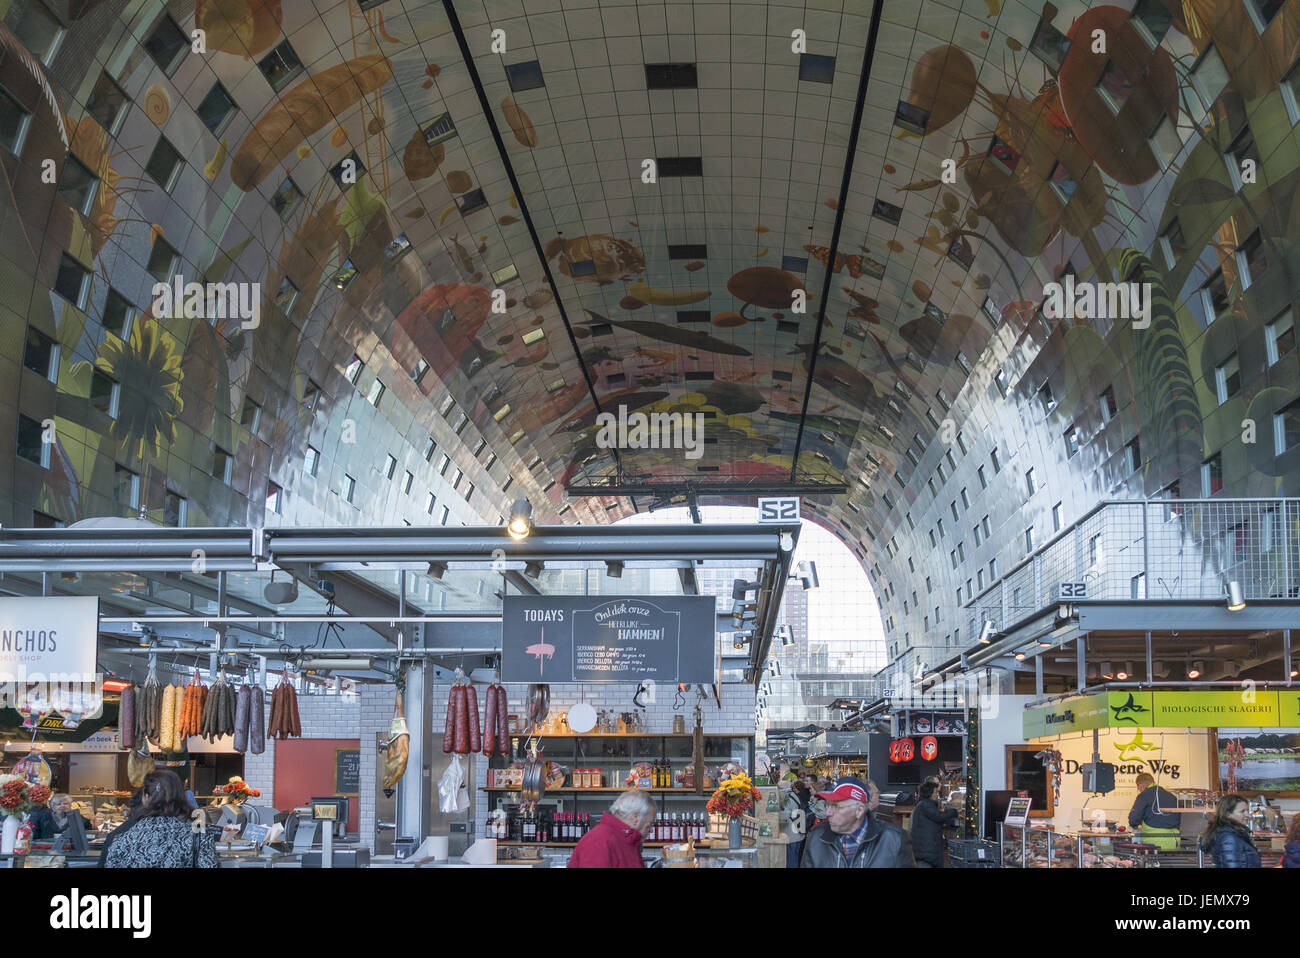 Markthalle Rotterdam Markthalle Stock Photos And Markthalle Stock Images Alamy